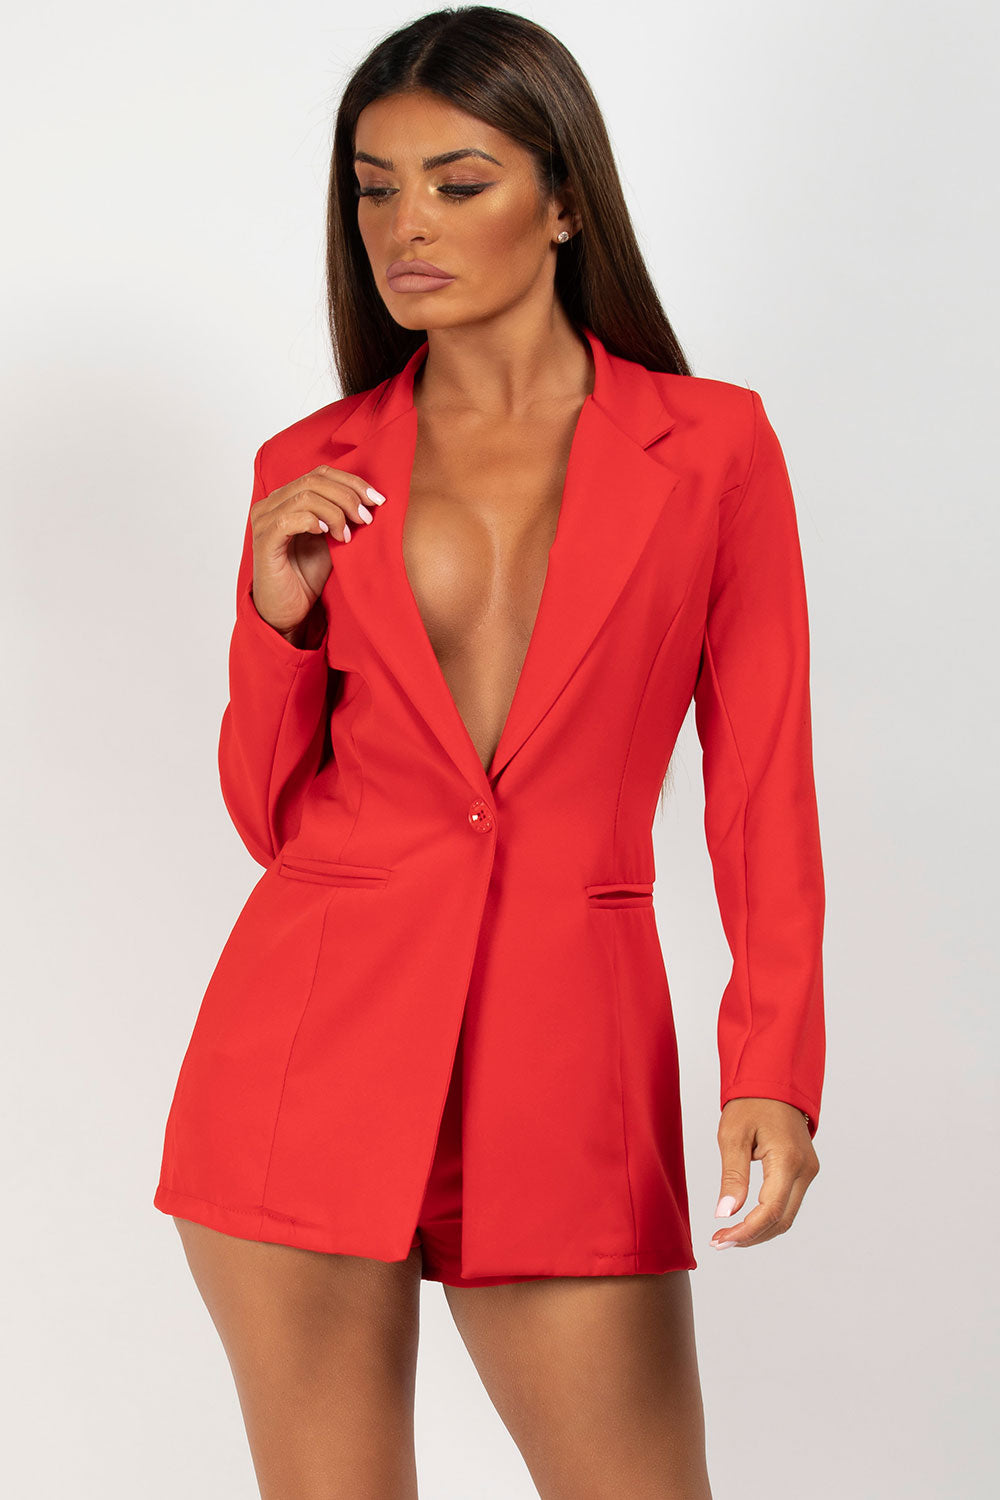 red blazer and shorts two piece set